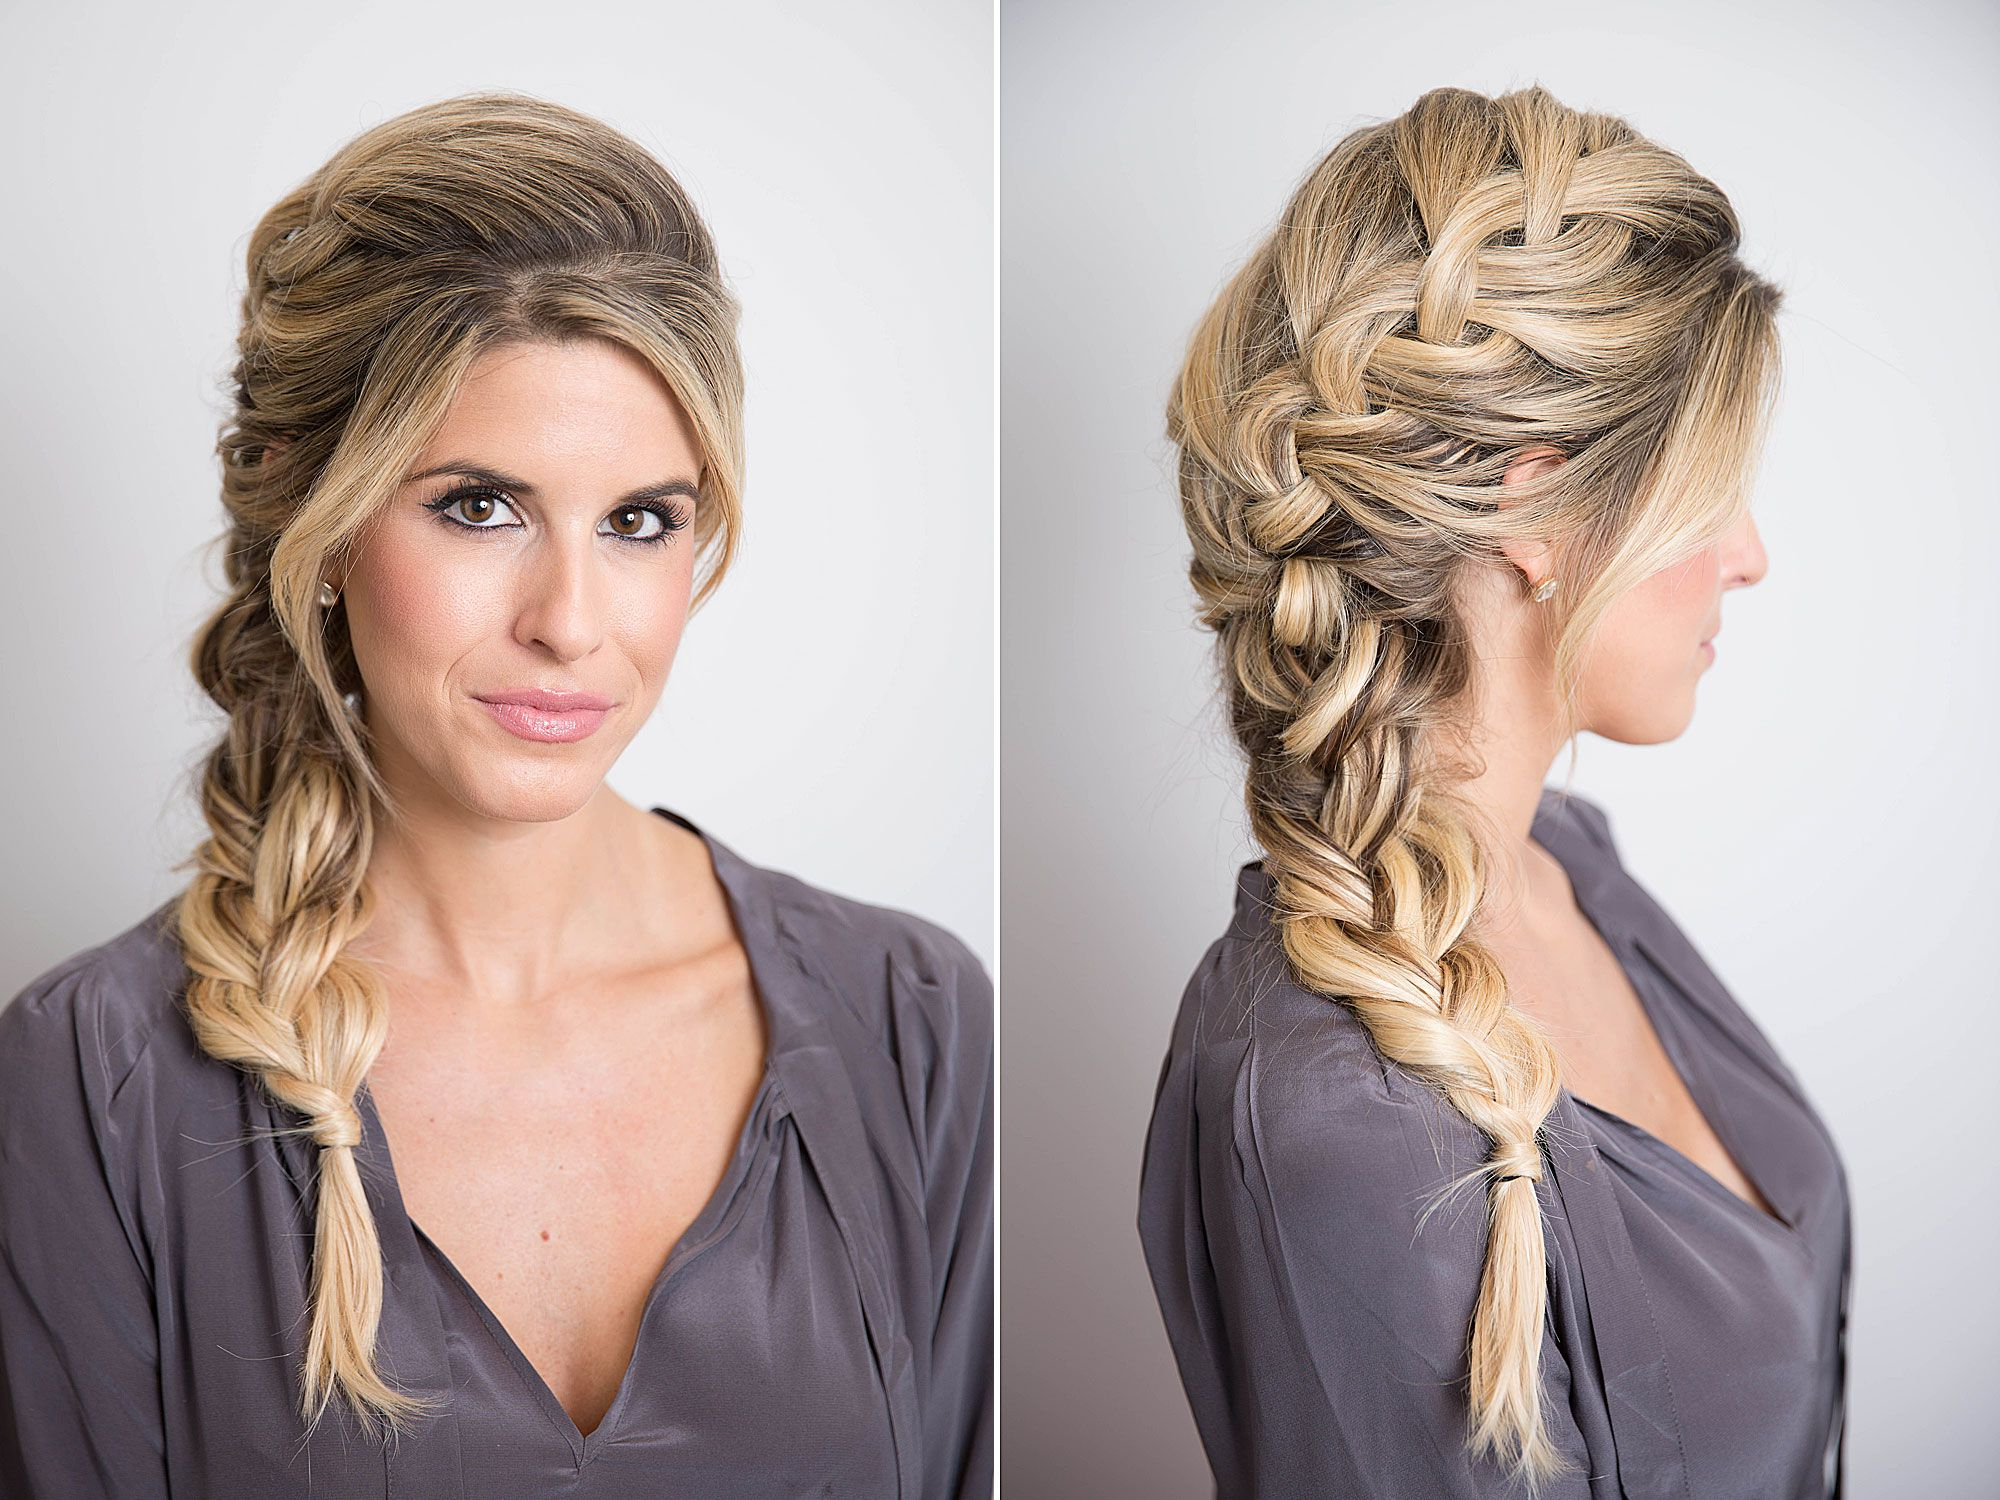 17 Braided Hairstyles With Gifs – How To Do Every Type Of Braid In Most Popular Braided And Wrapped Hairstyles (Gallery 15 of 20)